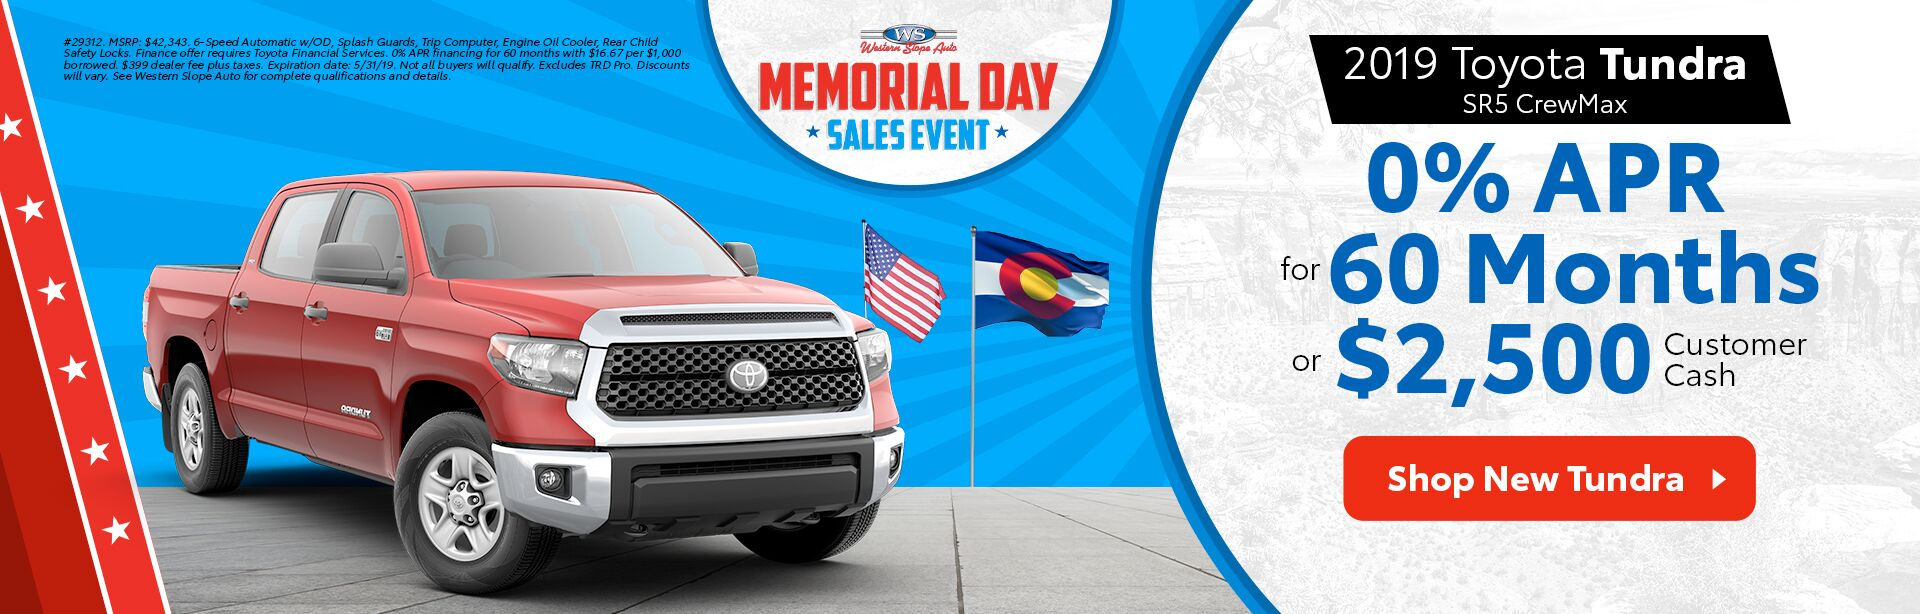 2019 Tundra / Memorial Day Sales Event